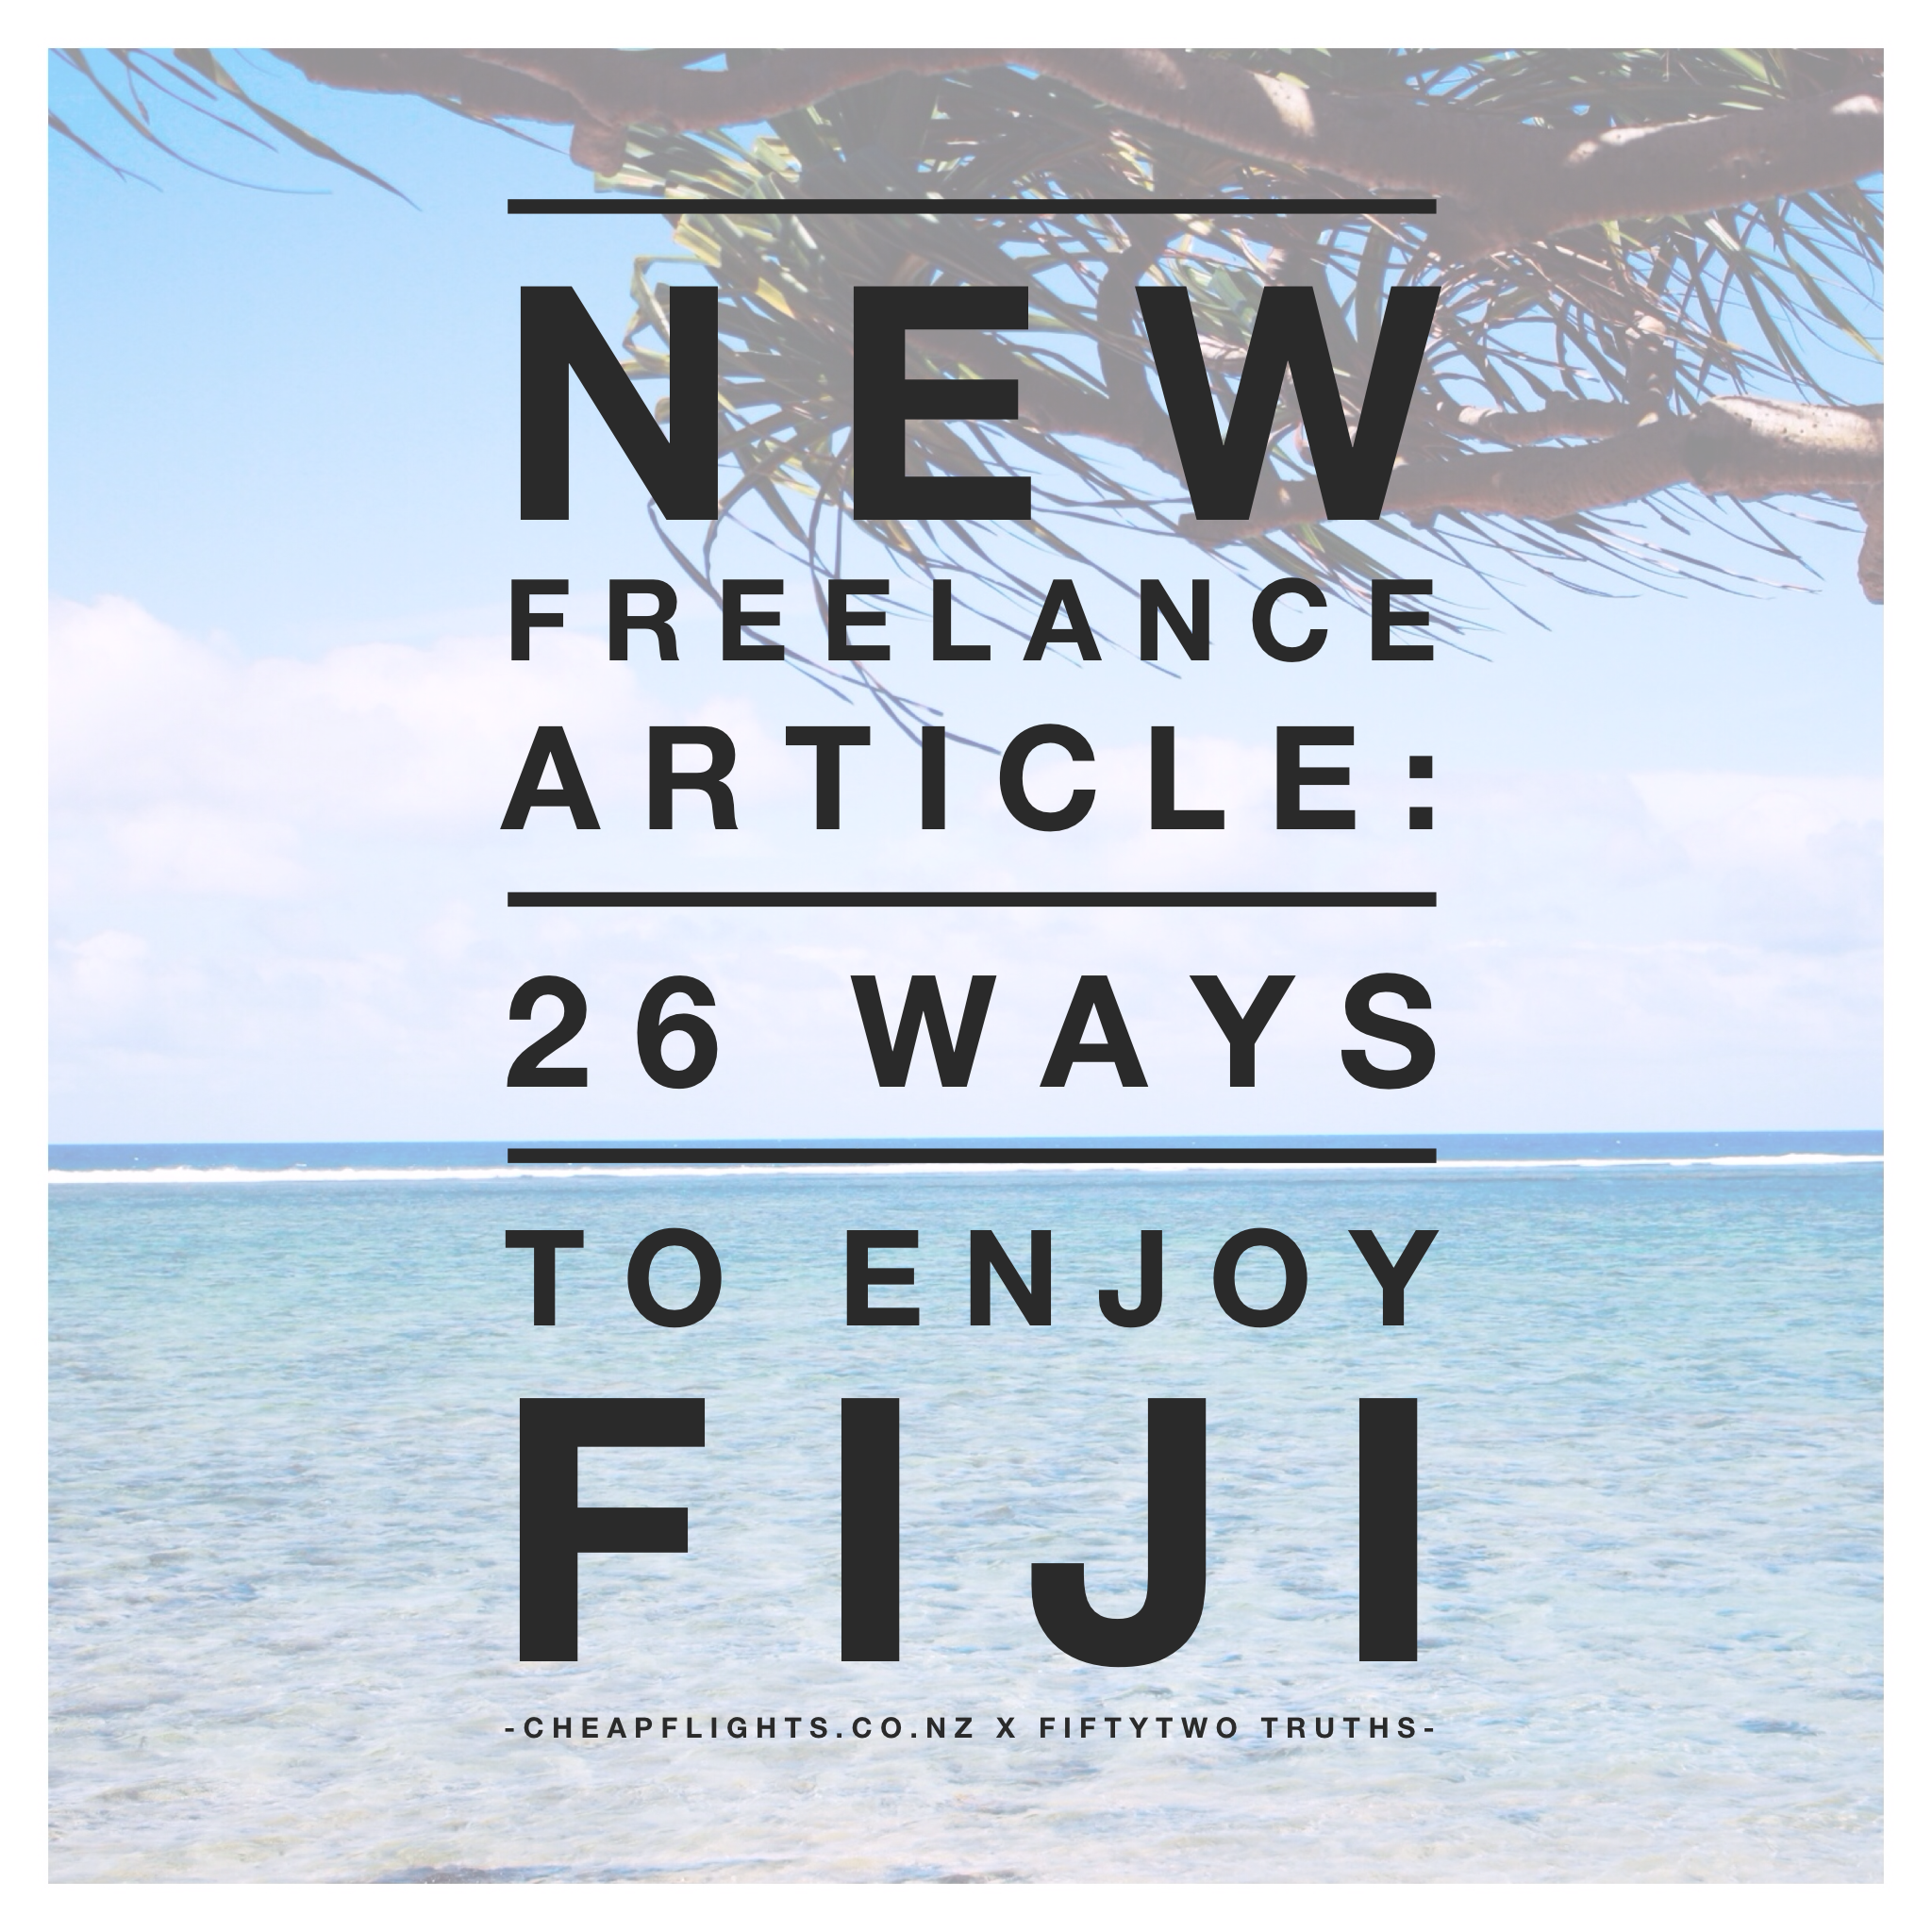 26 Ways To Enjoy Fiji #fiftytwotruths #cheapflights